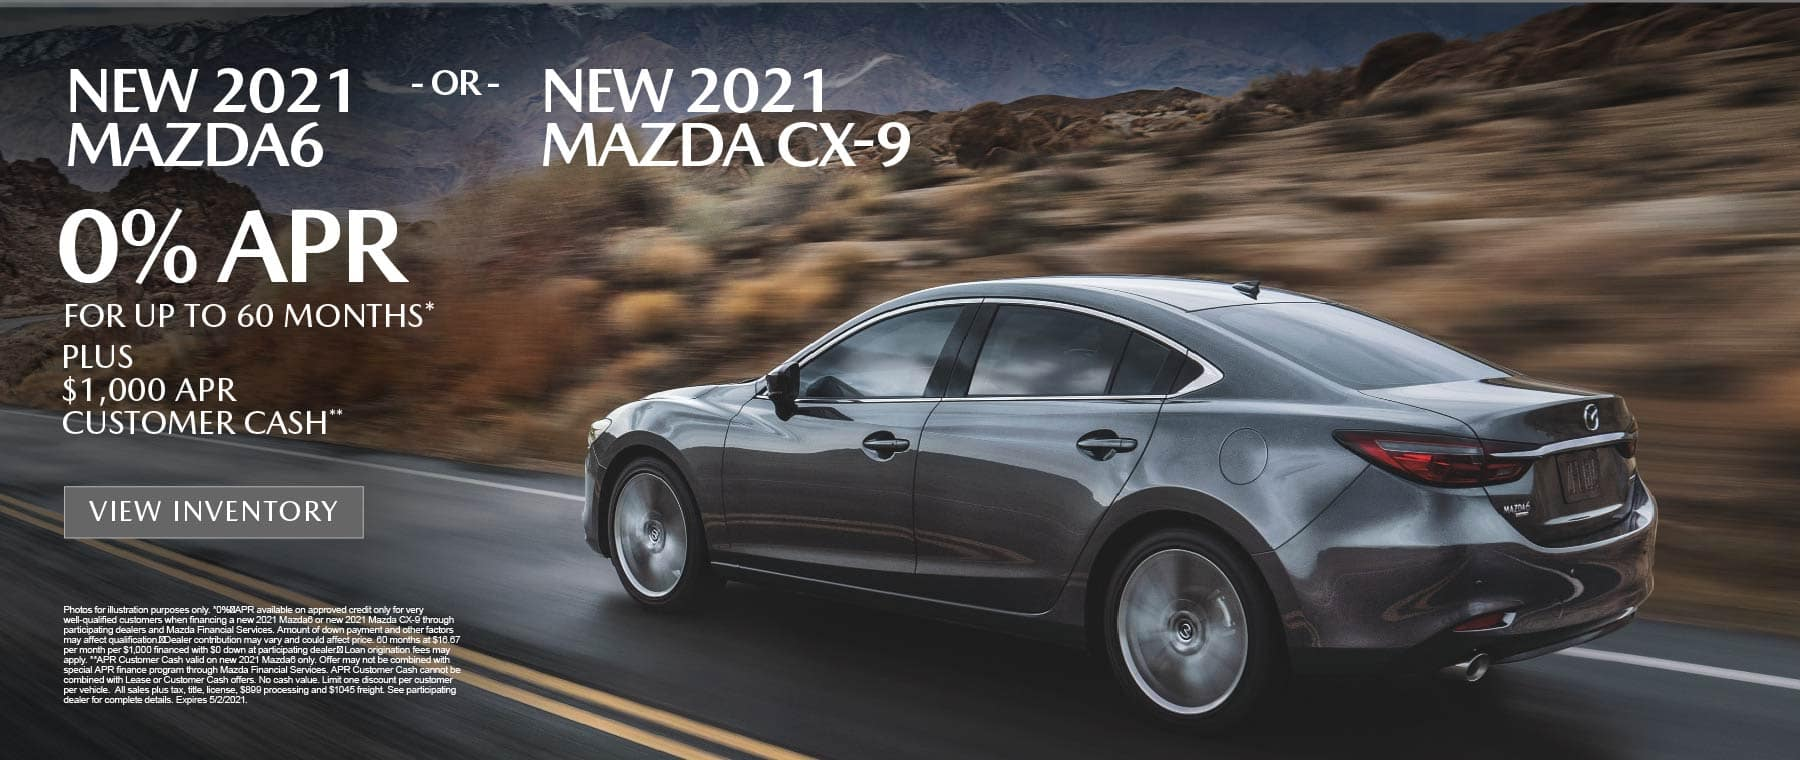 NEW 2021 MAZDA6 OR NEW 2021 MAZDA CX-9 – 0% APR for up to 60 months* PLUS $1,000 APR Customer Cash** View inventory.